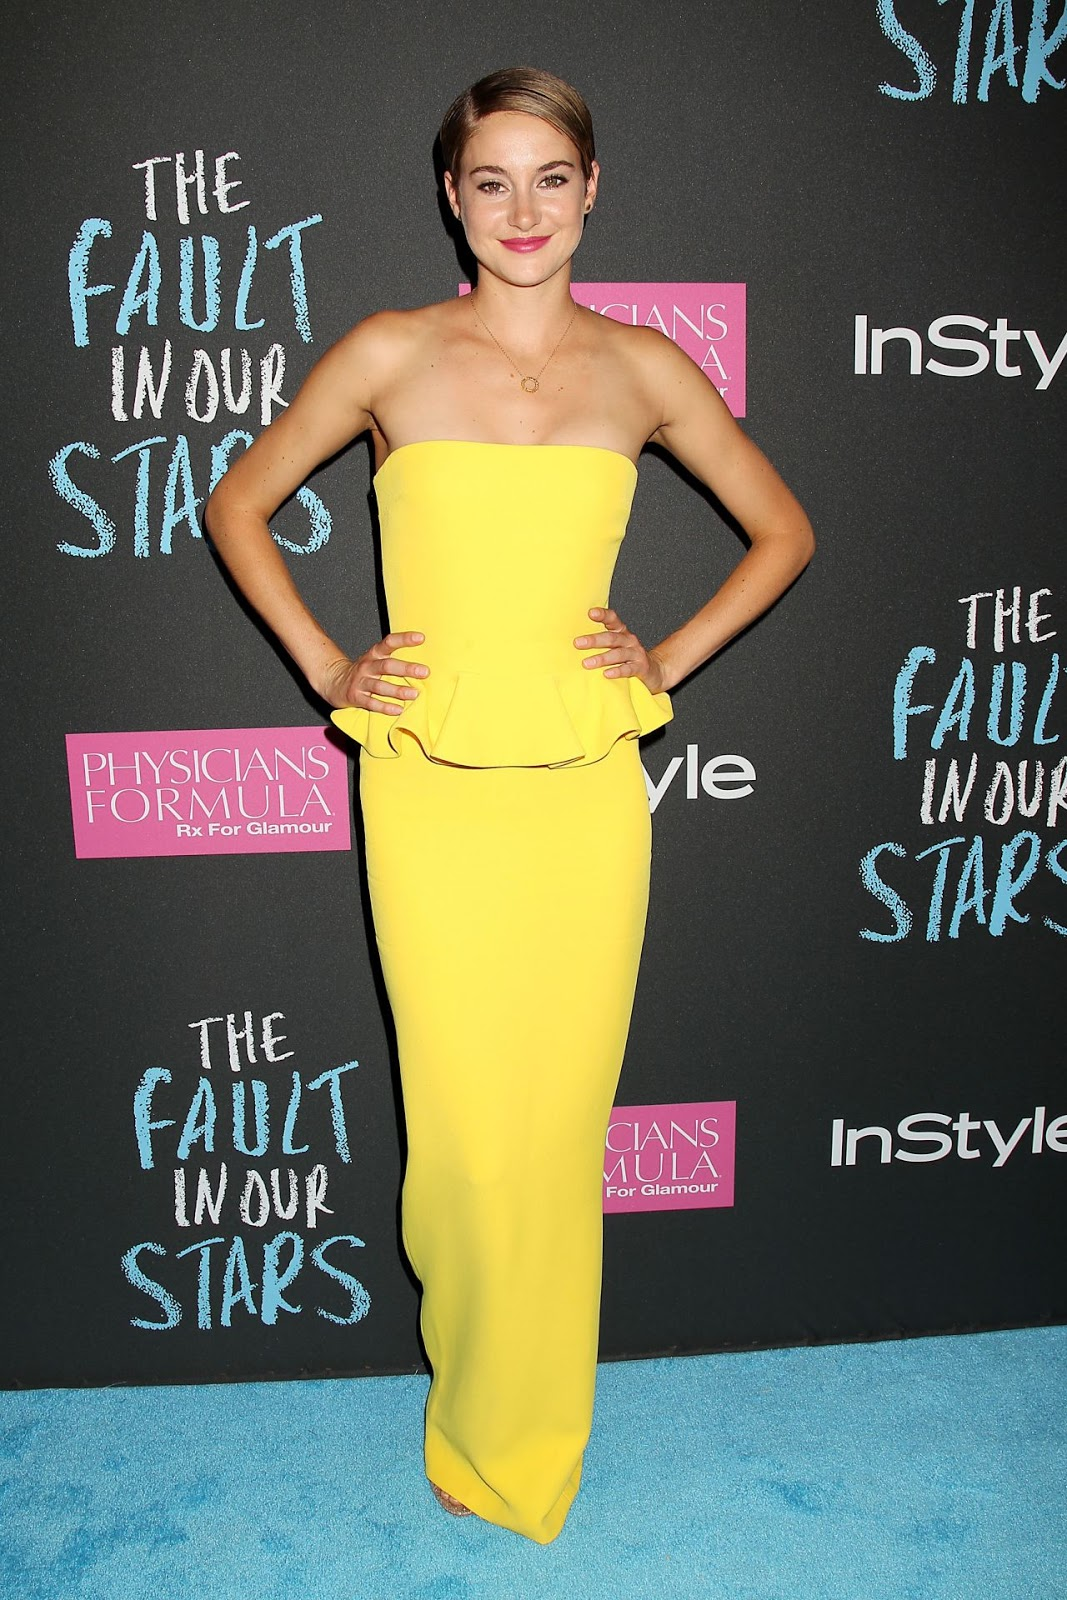 Shailene Woodley in a strapless Ralph Lauren dress at 'The Fault in Our Stars' NY Premiere